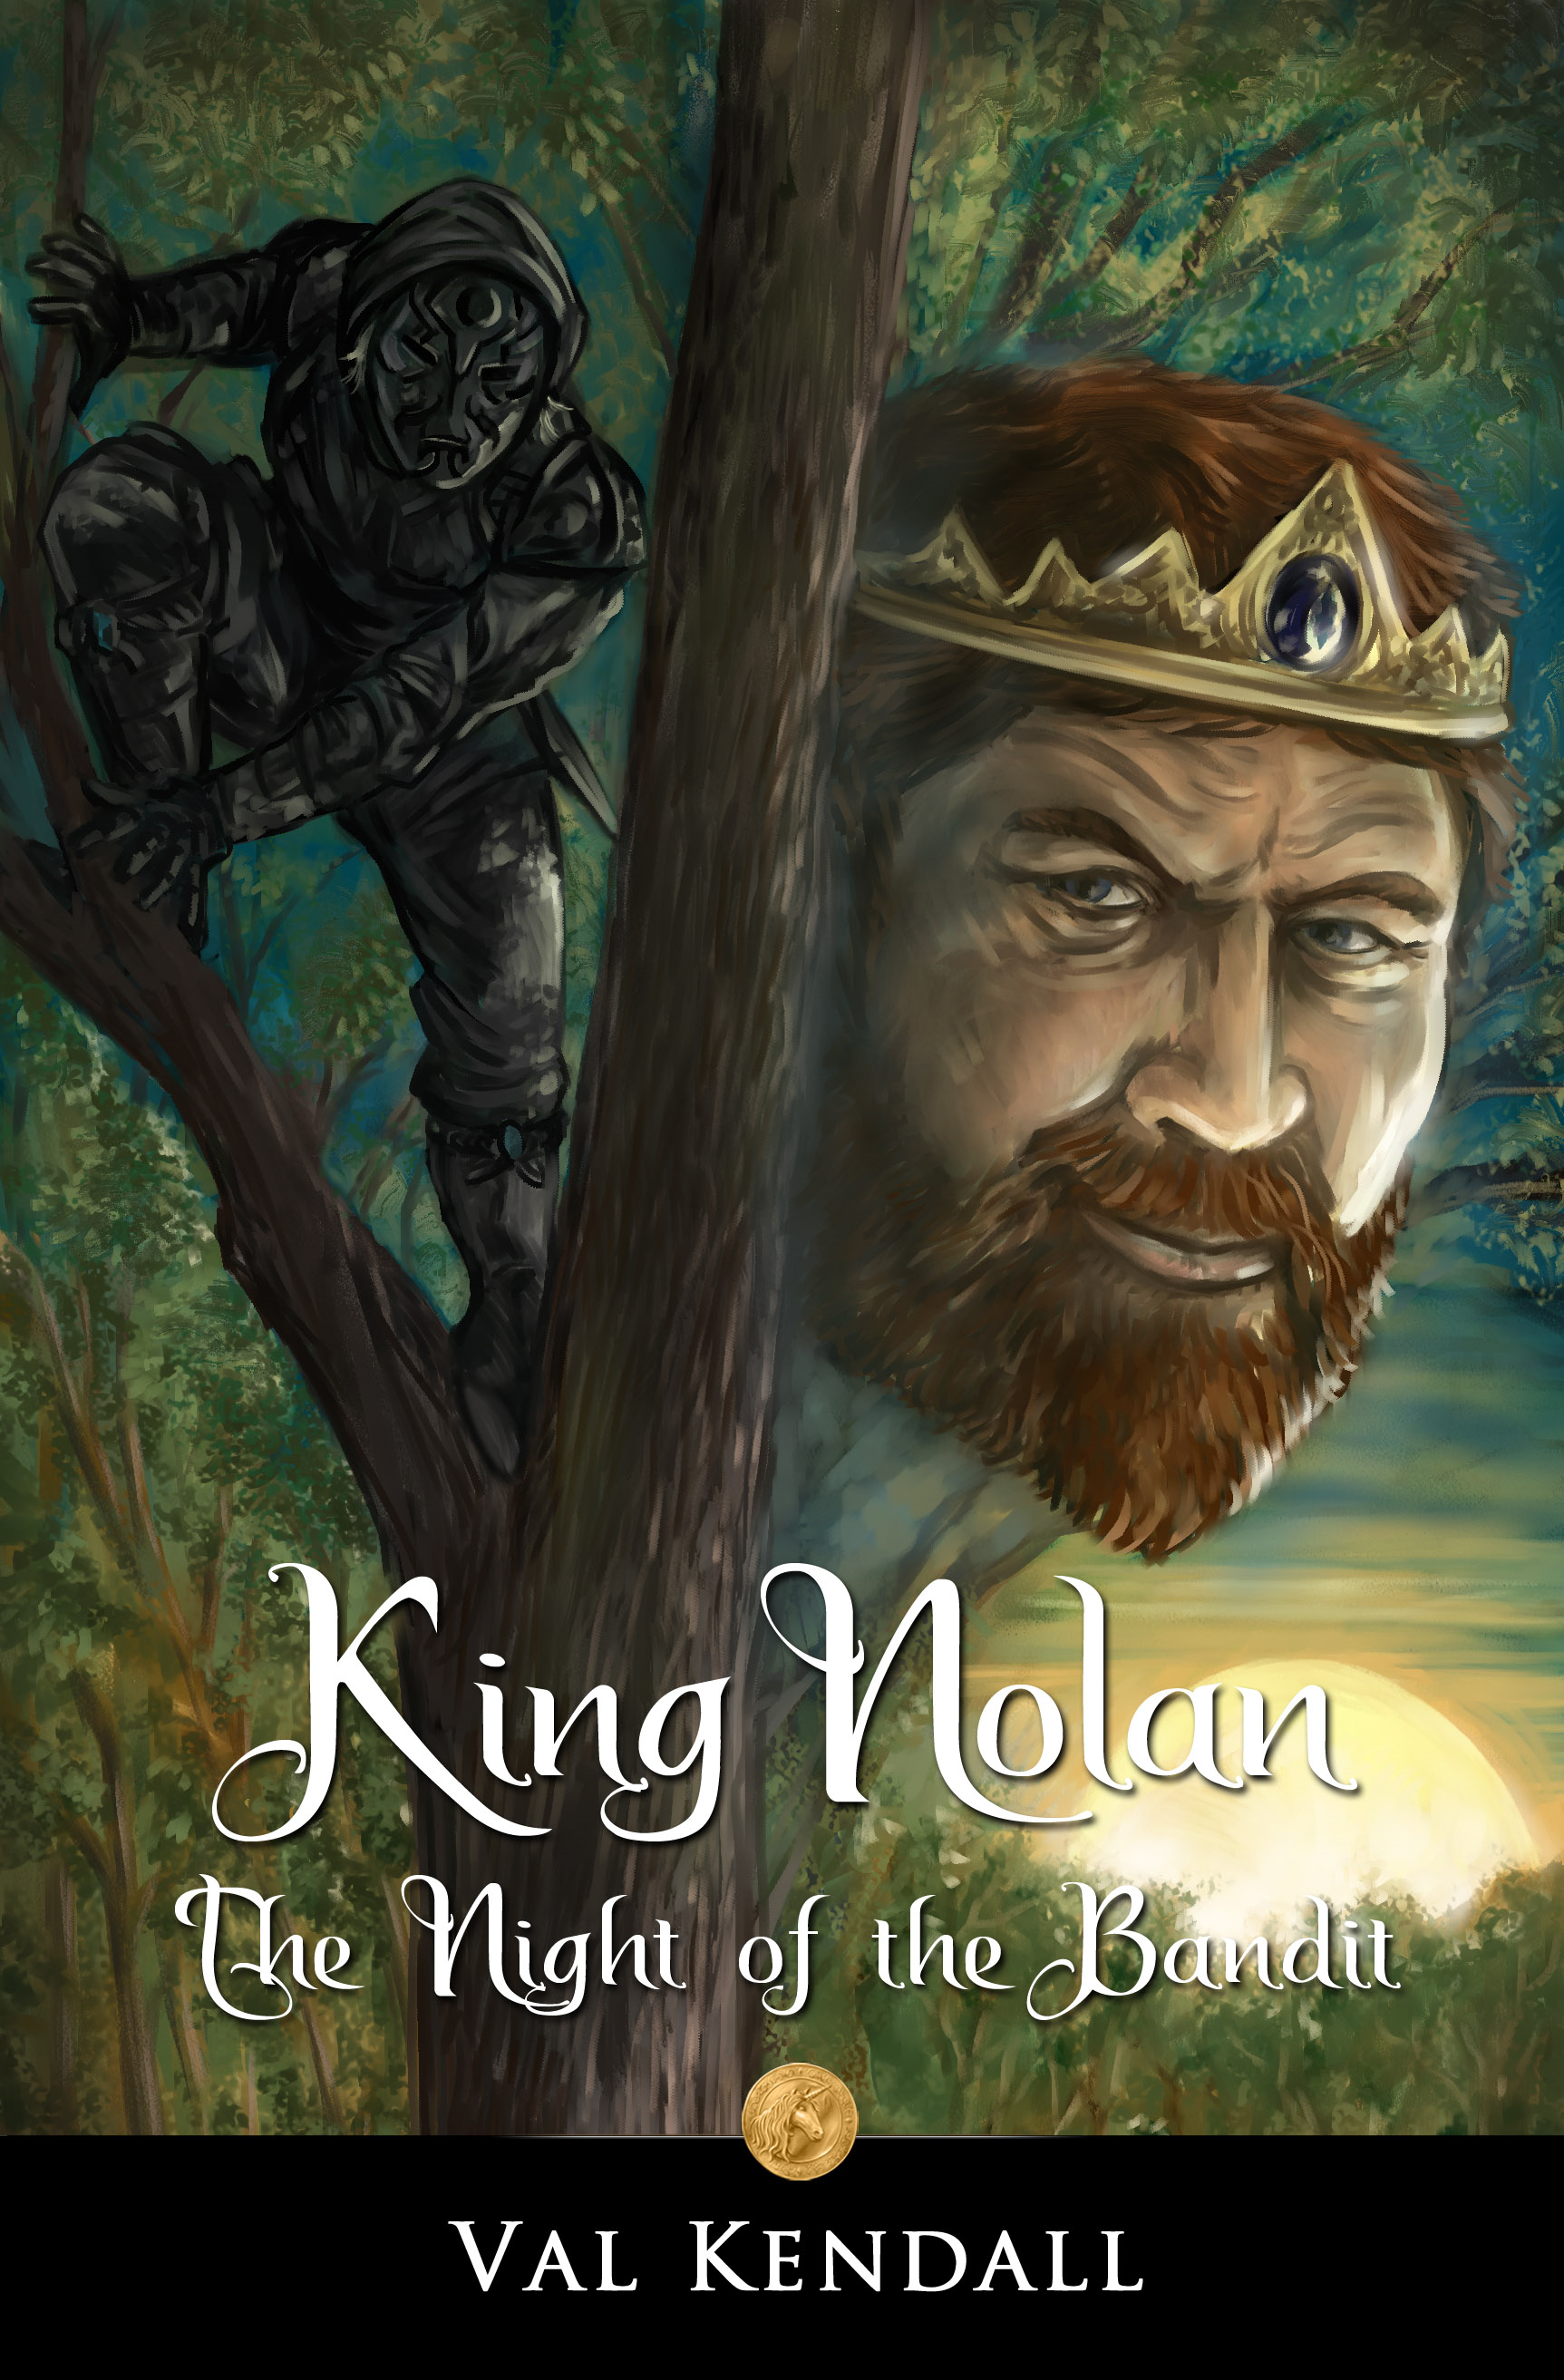 King Nolan - The Night of the Bandit - Book 1 [Short Novel] (Guardians of Har)